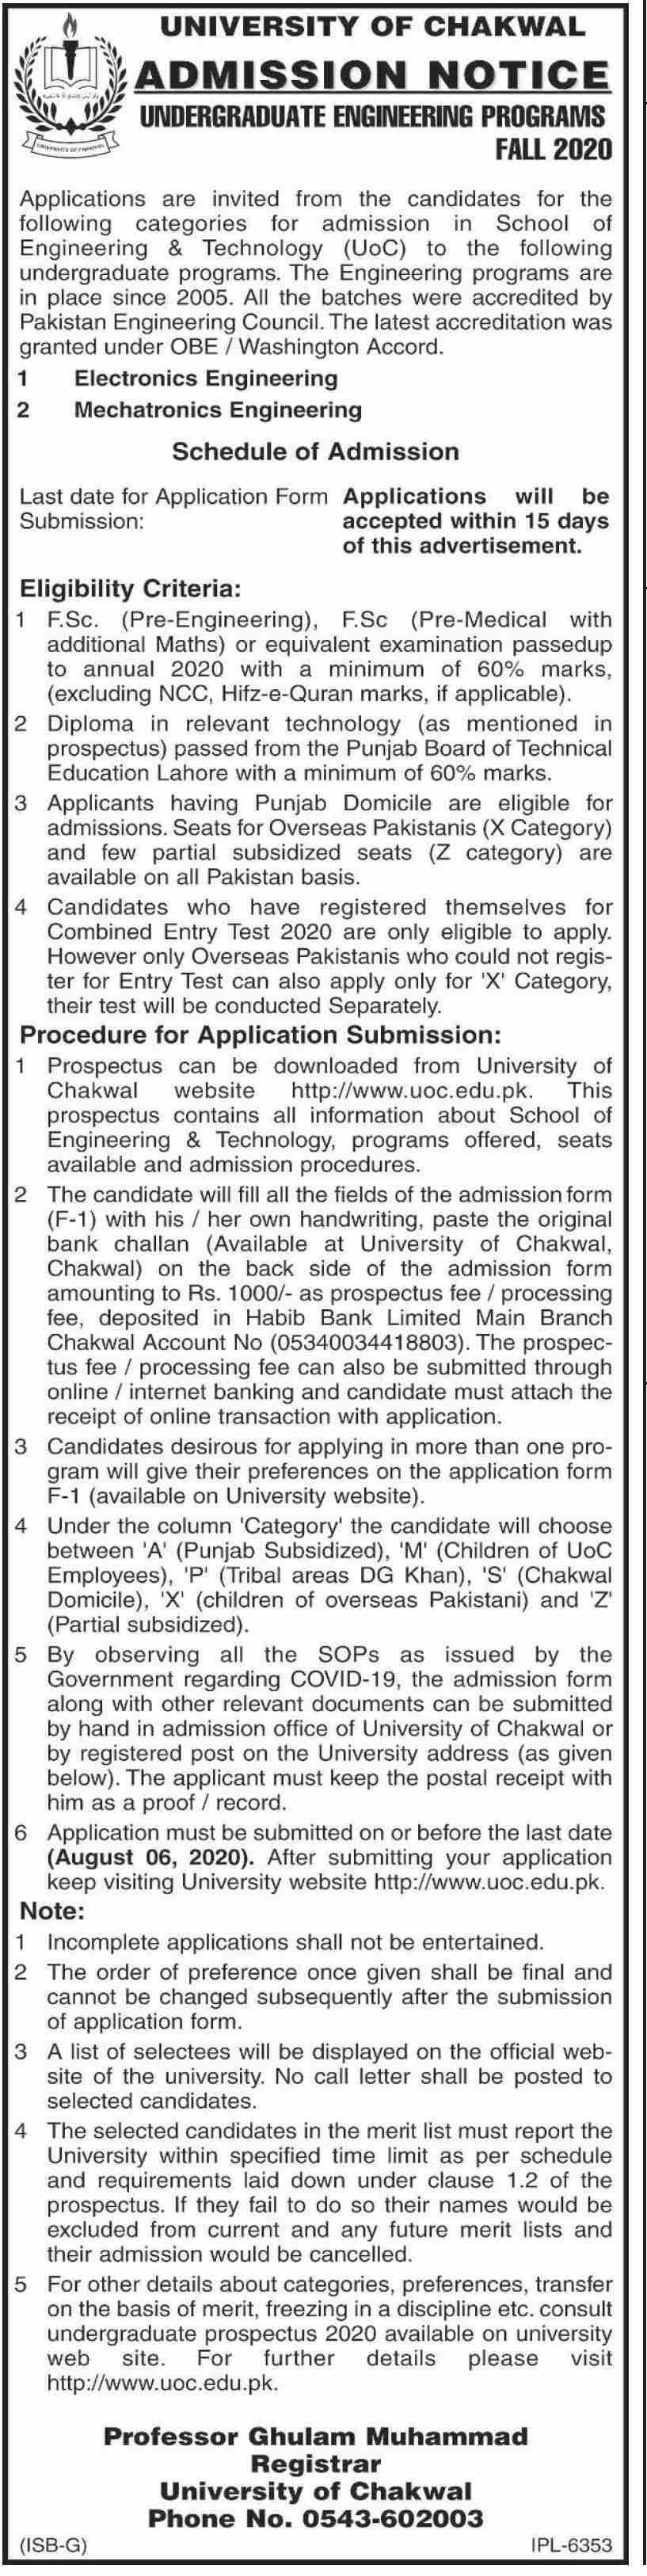 University Of Chakwal Admissions